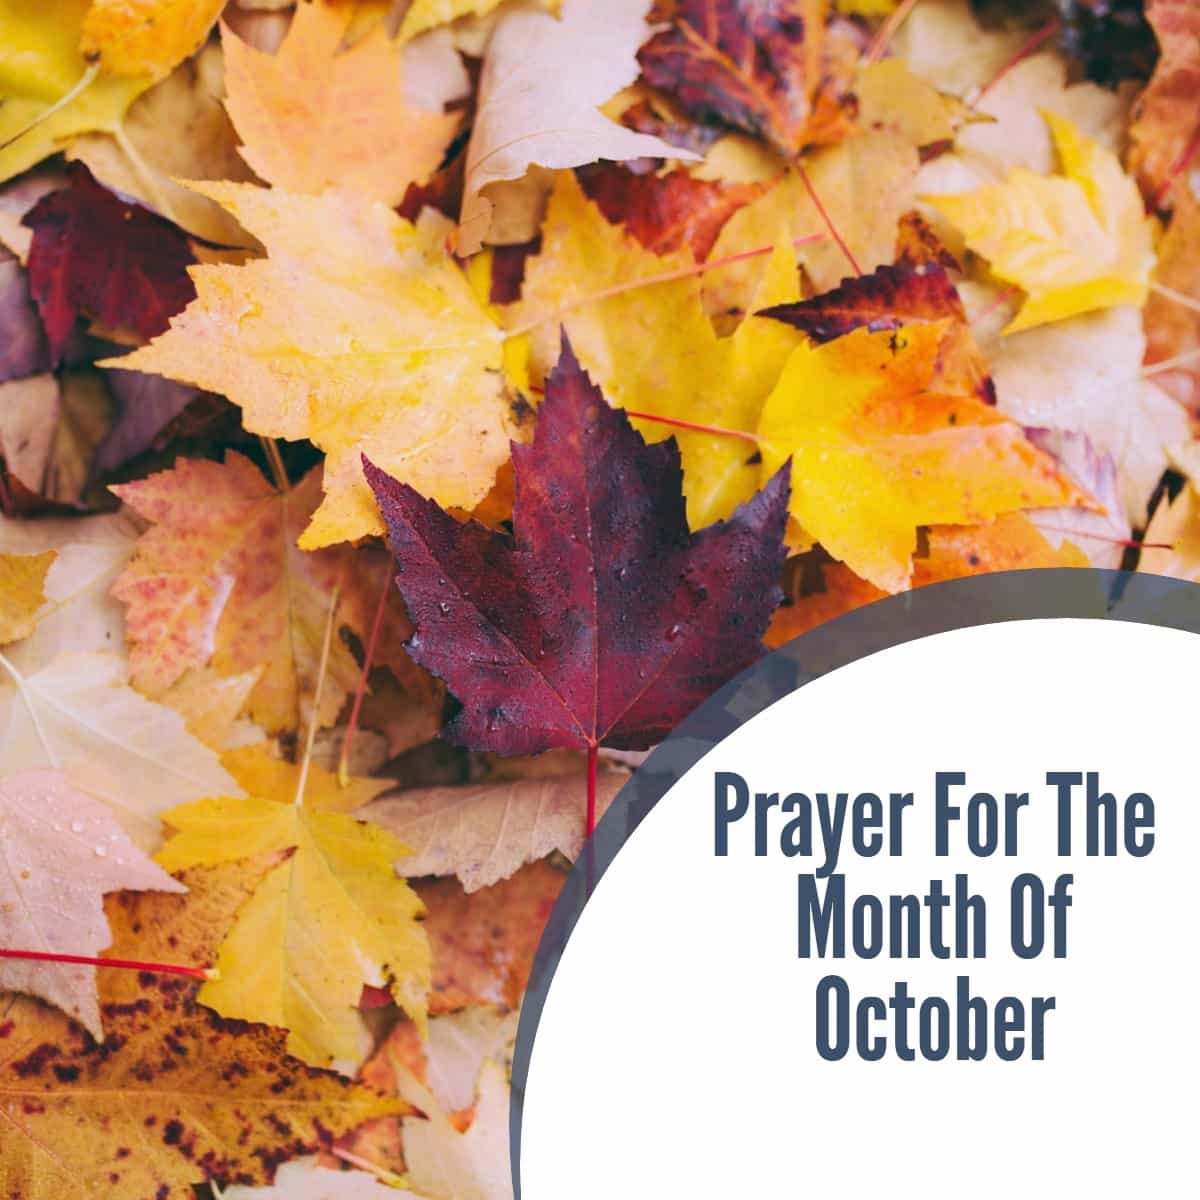 Prayer For The Month Of October